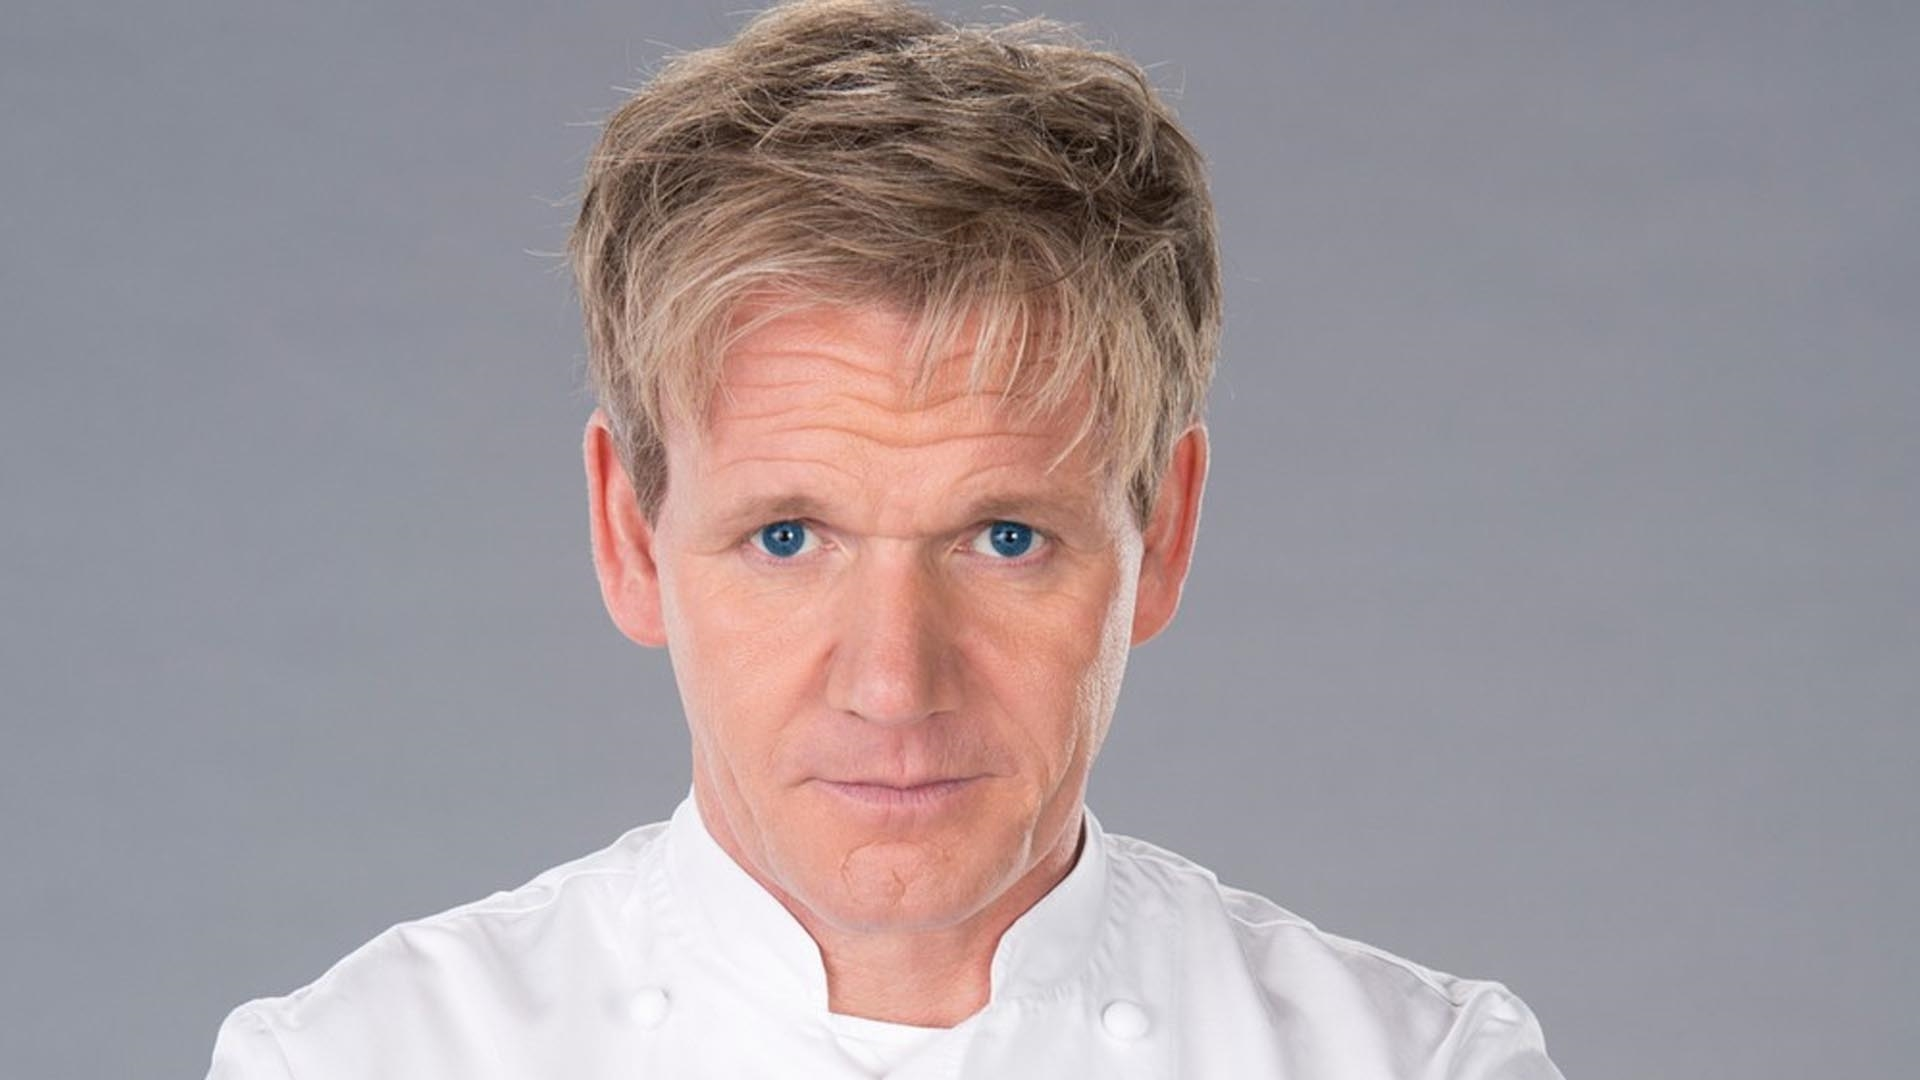 Fotos sexy de gordon ramsey